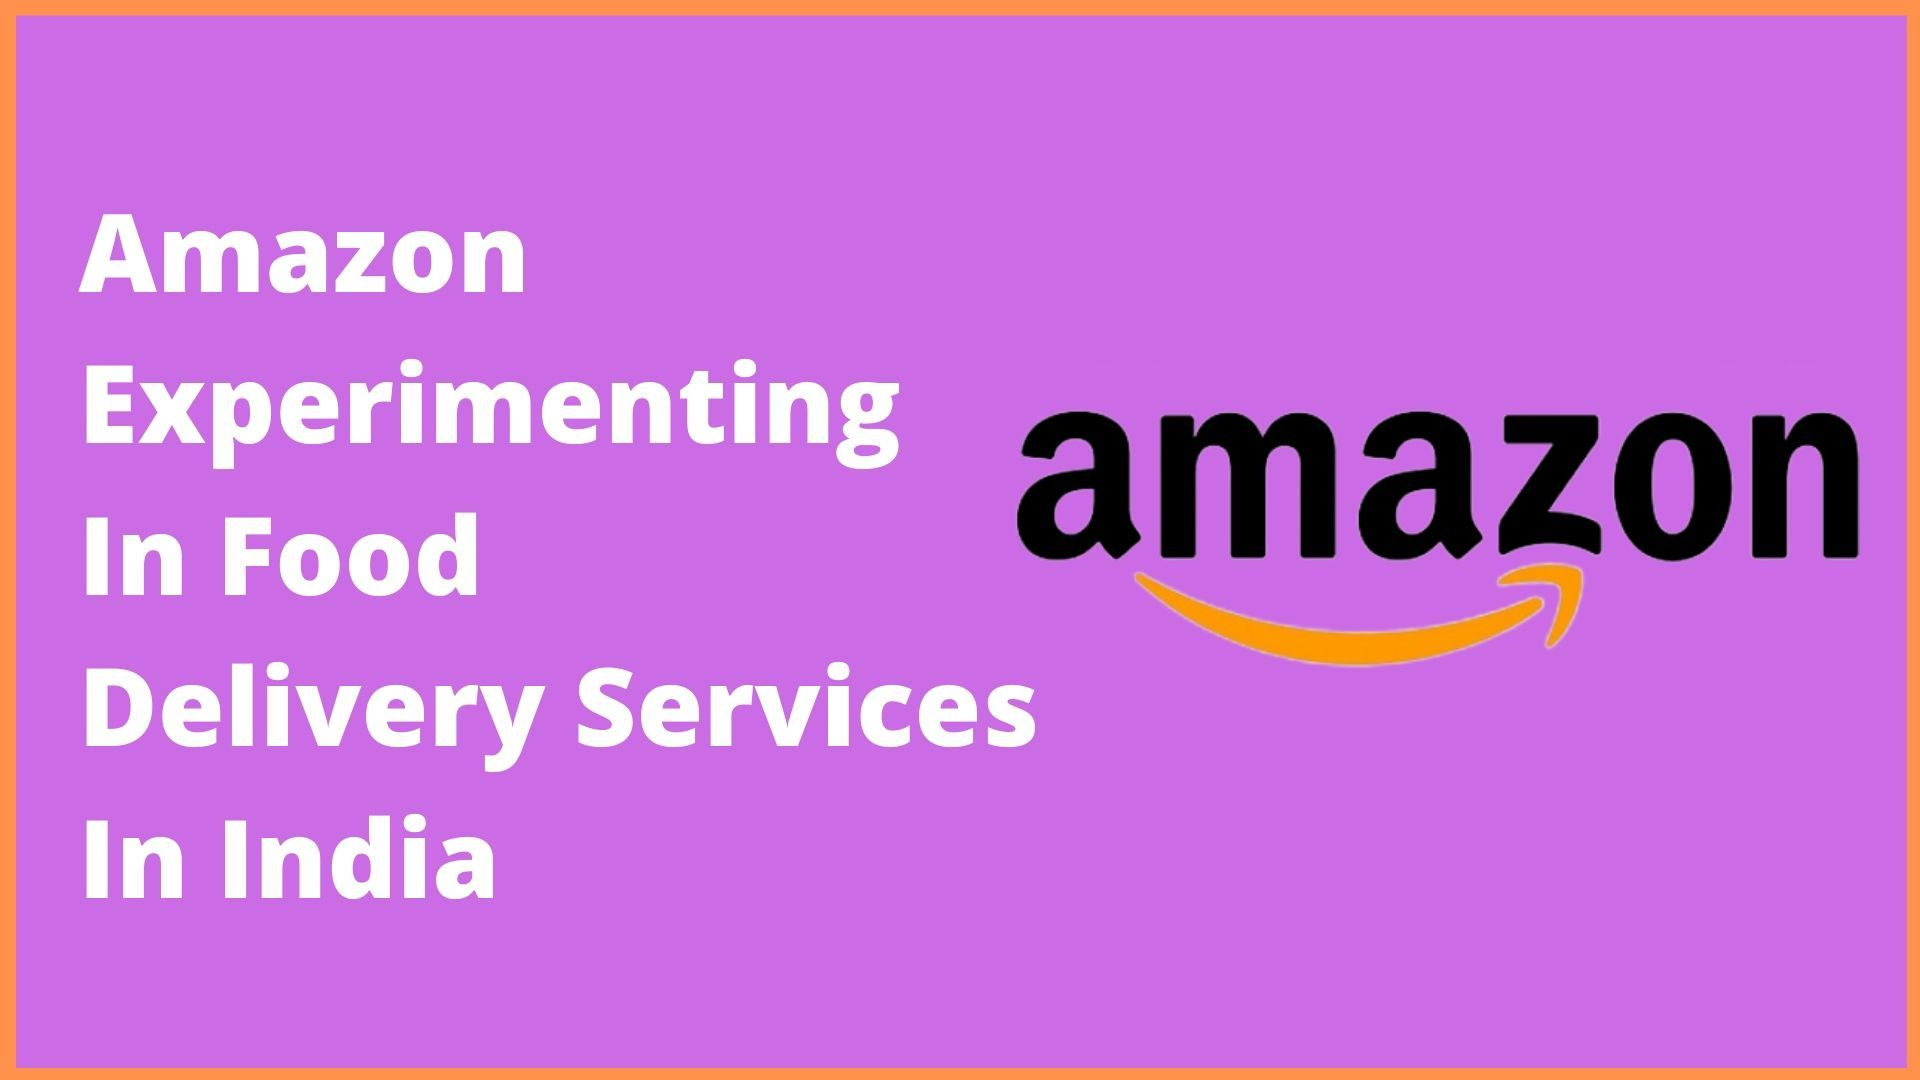 Amazon Experimenting In Food Delivery Services In India